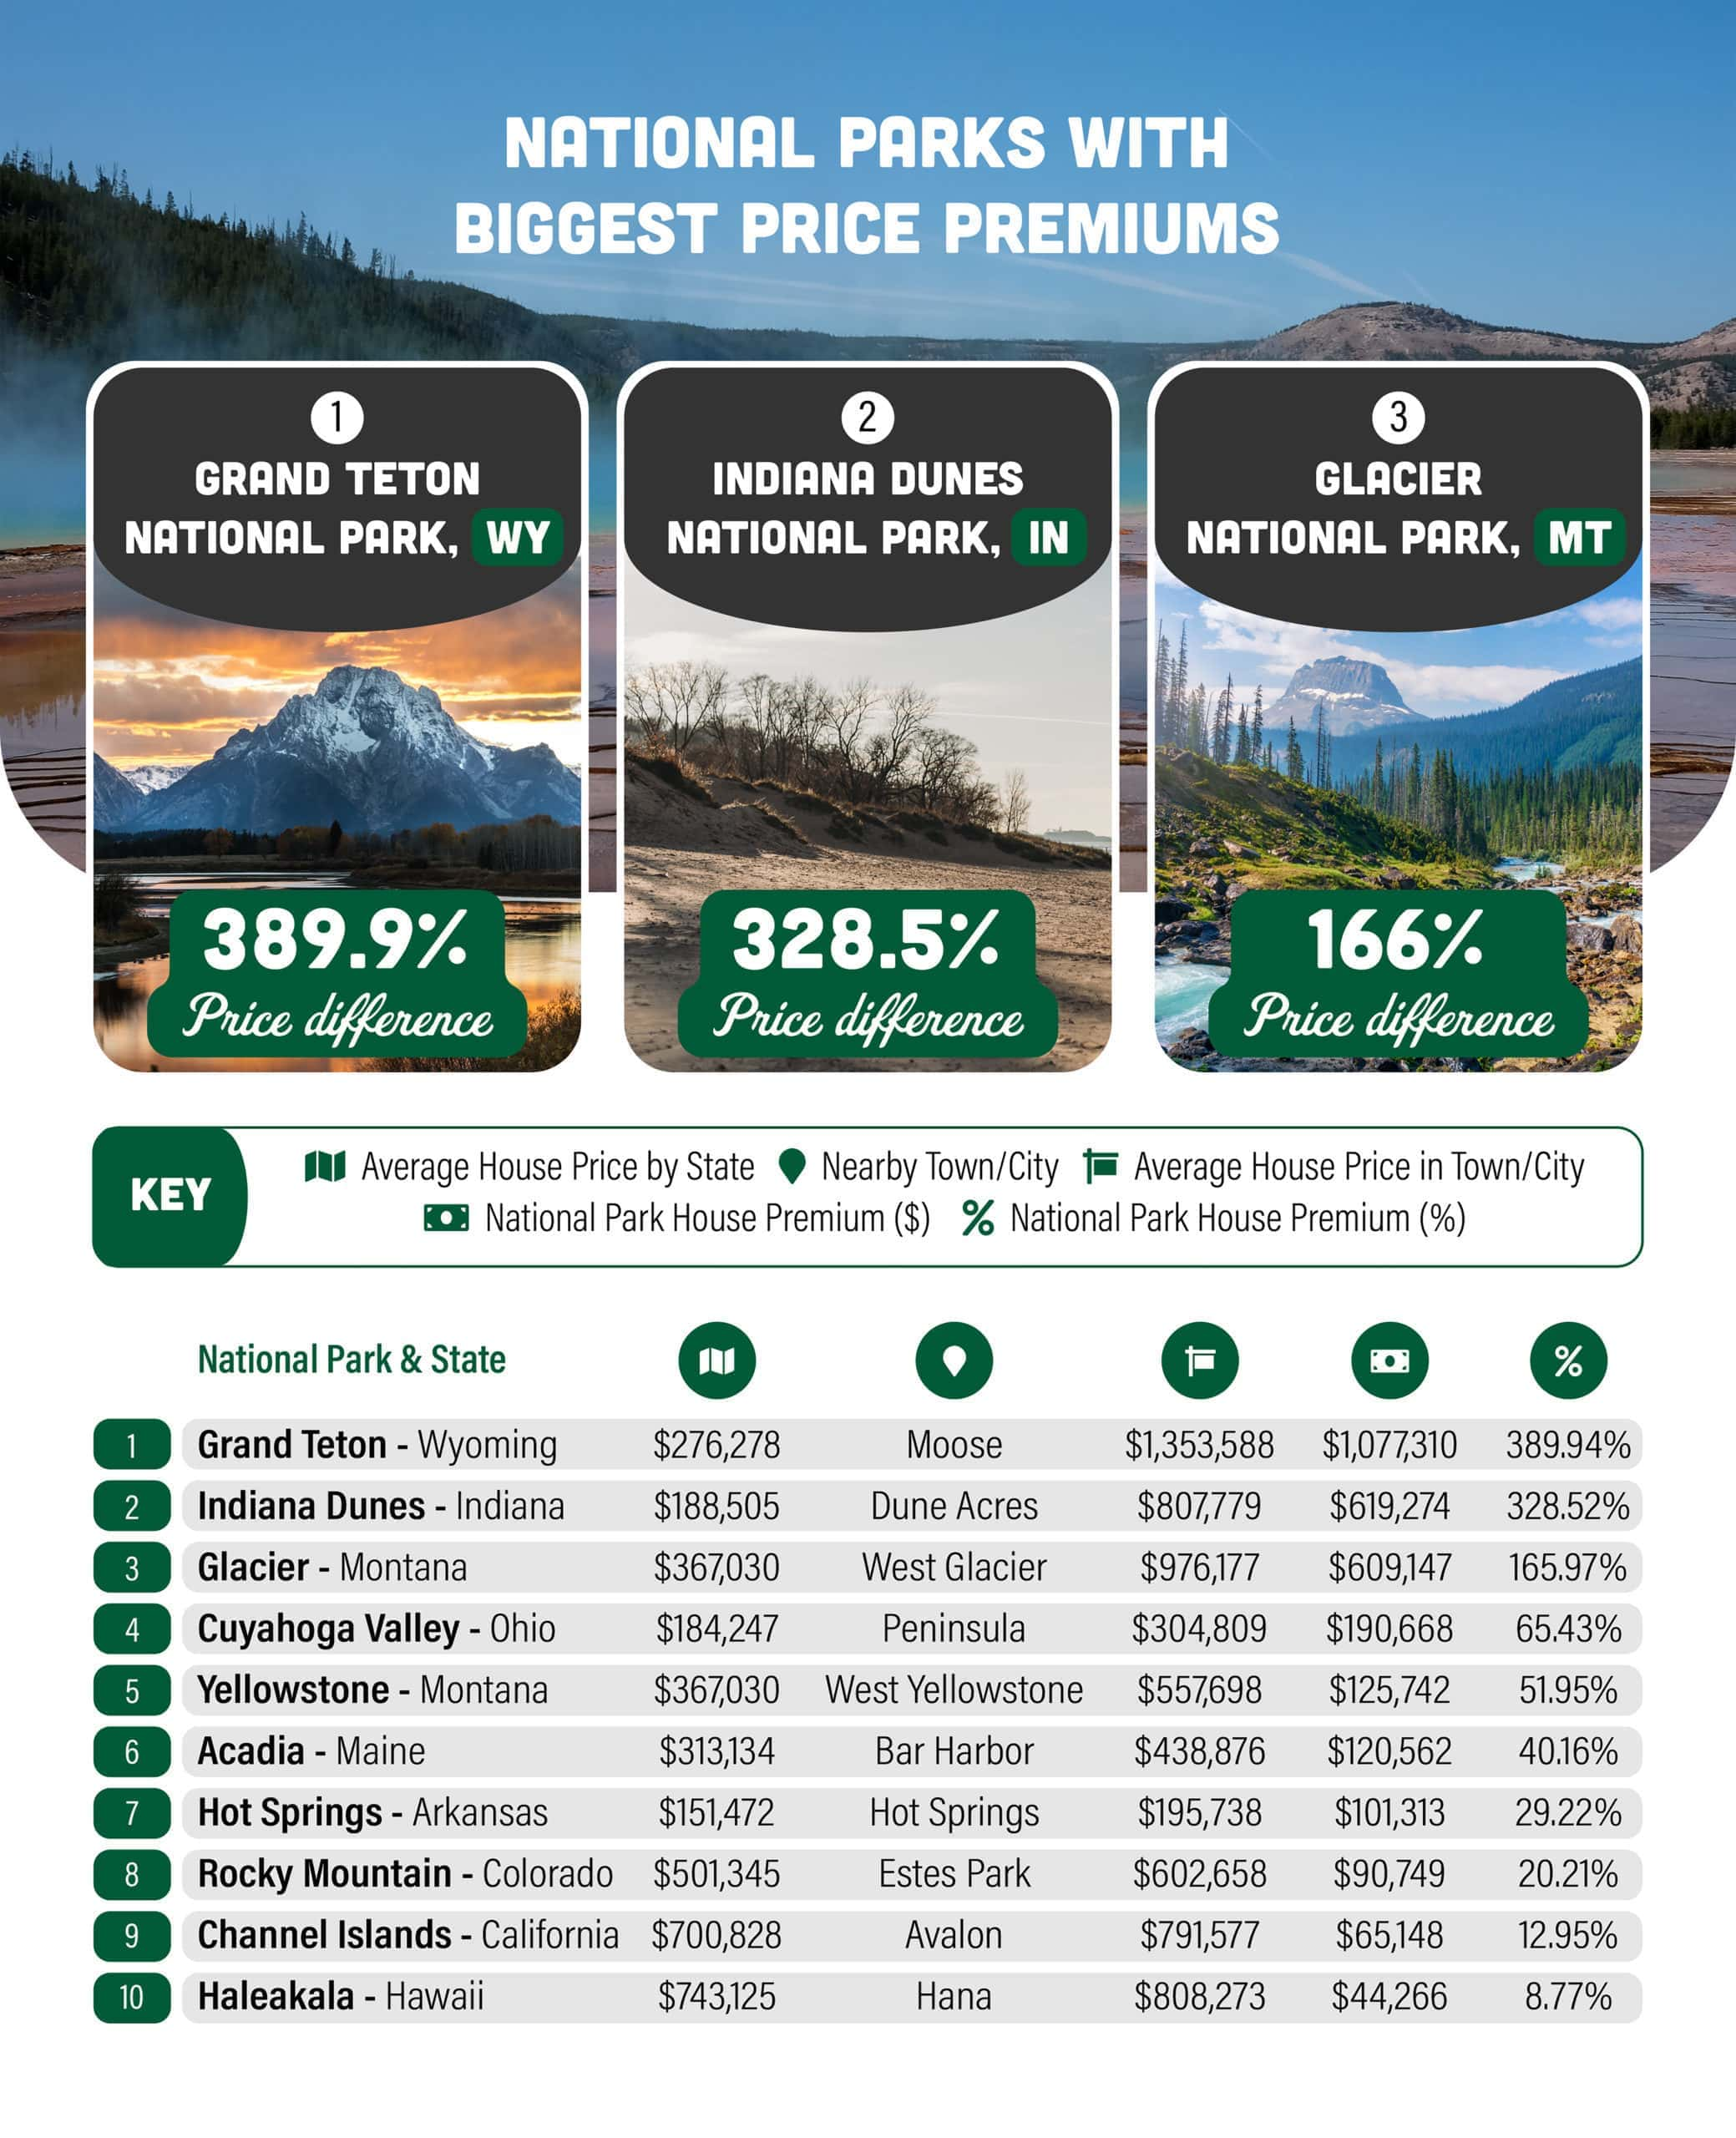 chart about national parks with biggest price premiums